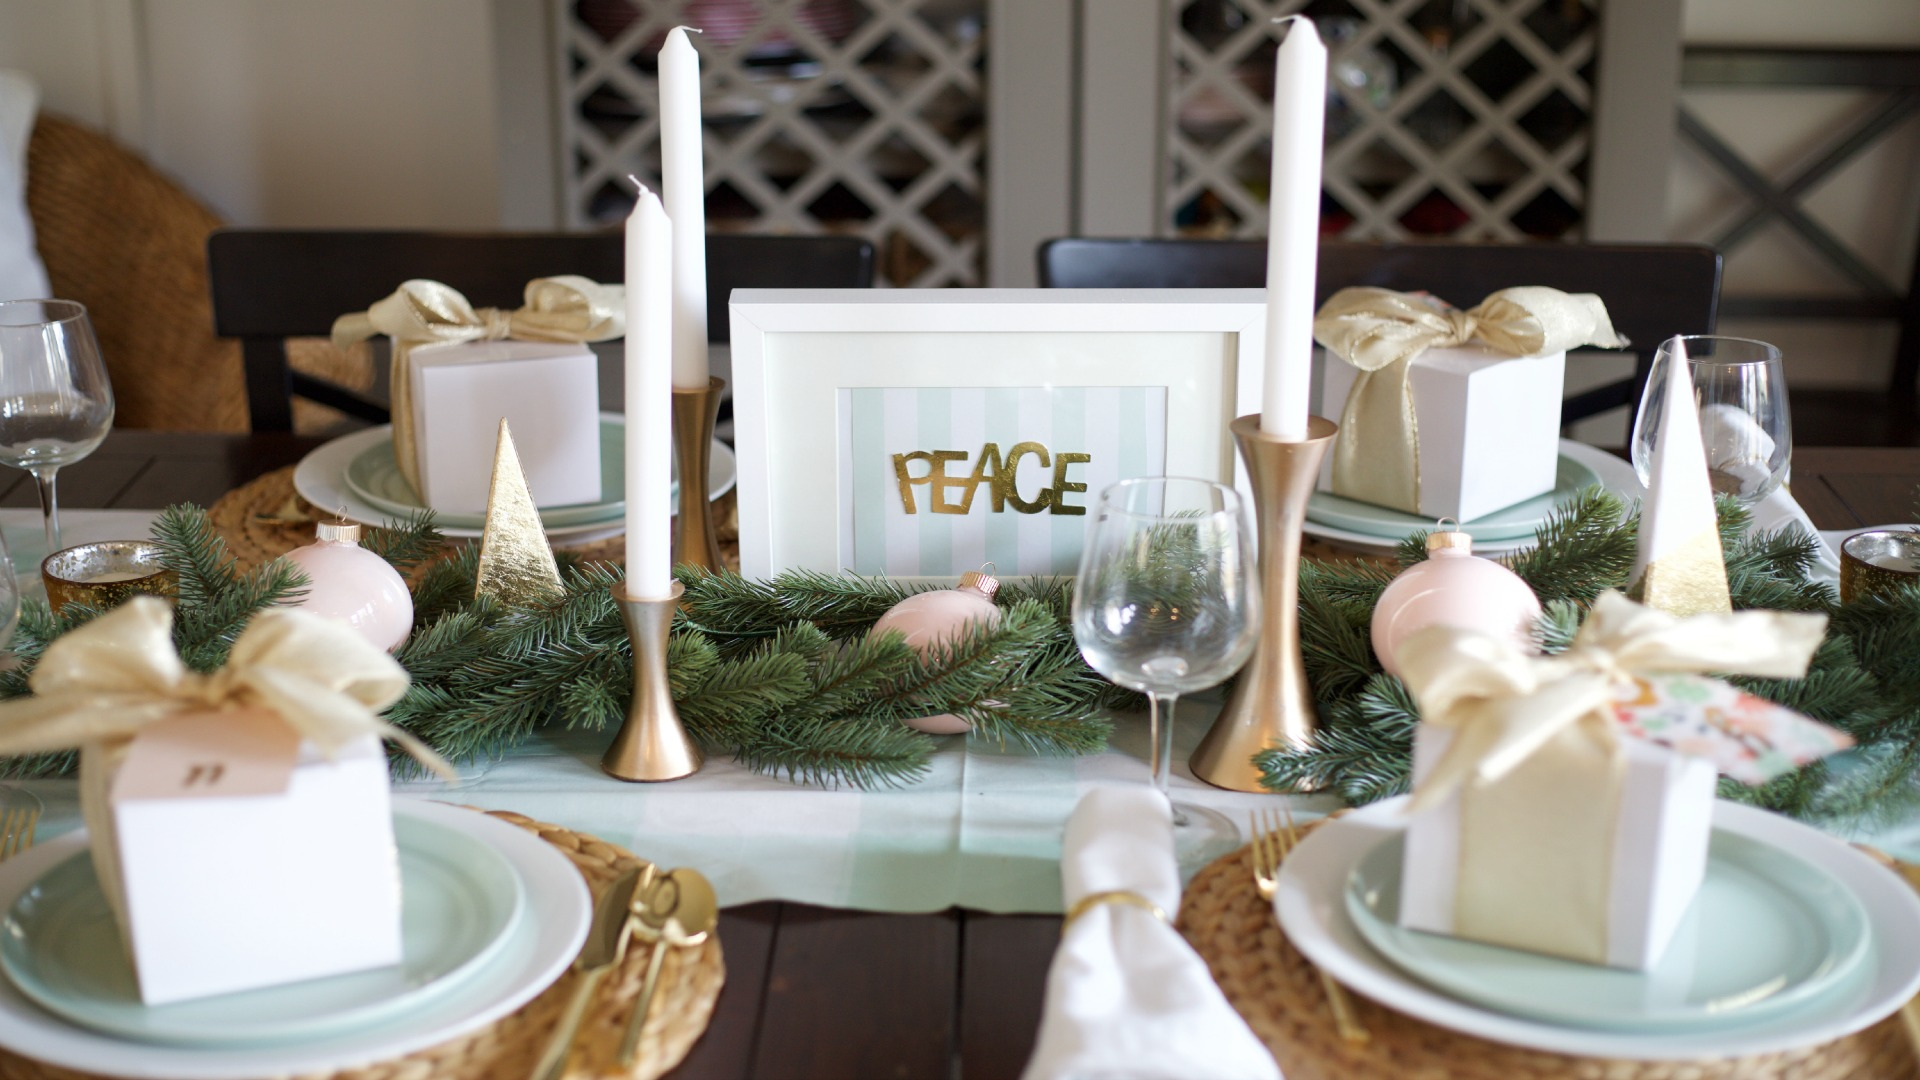 DIY Christmas Dinner Party: Foil Peace, Hope and Joy Project